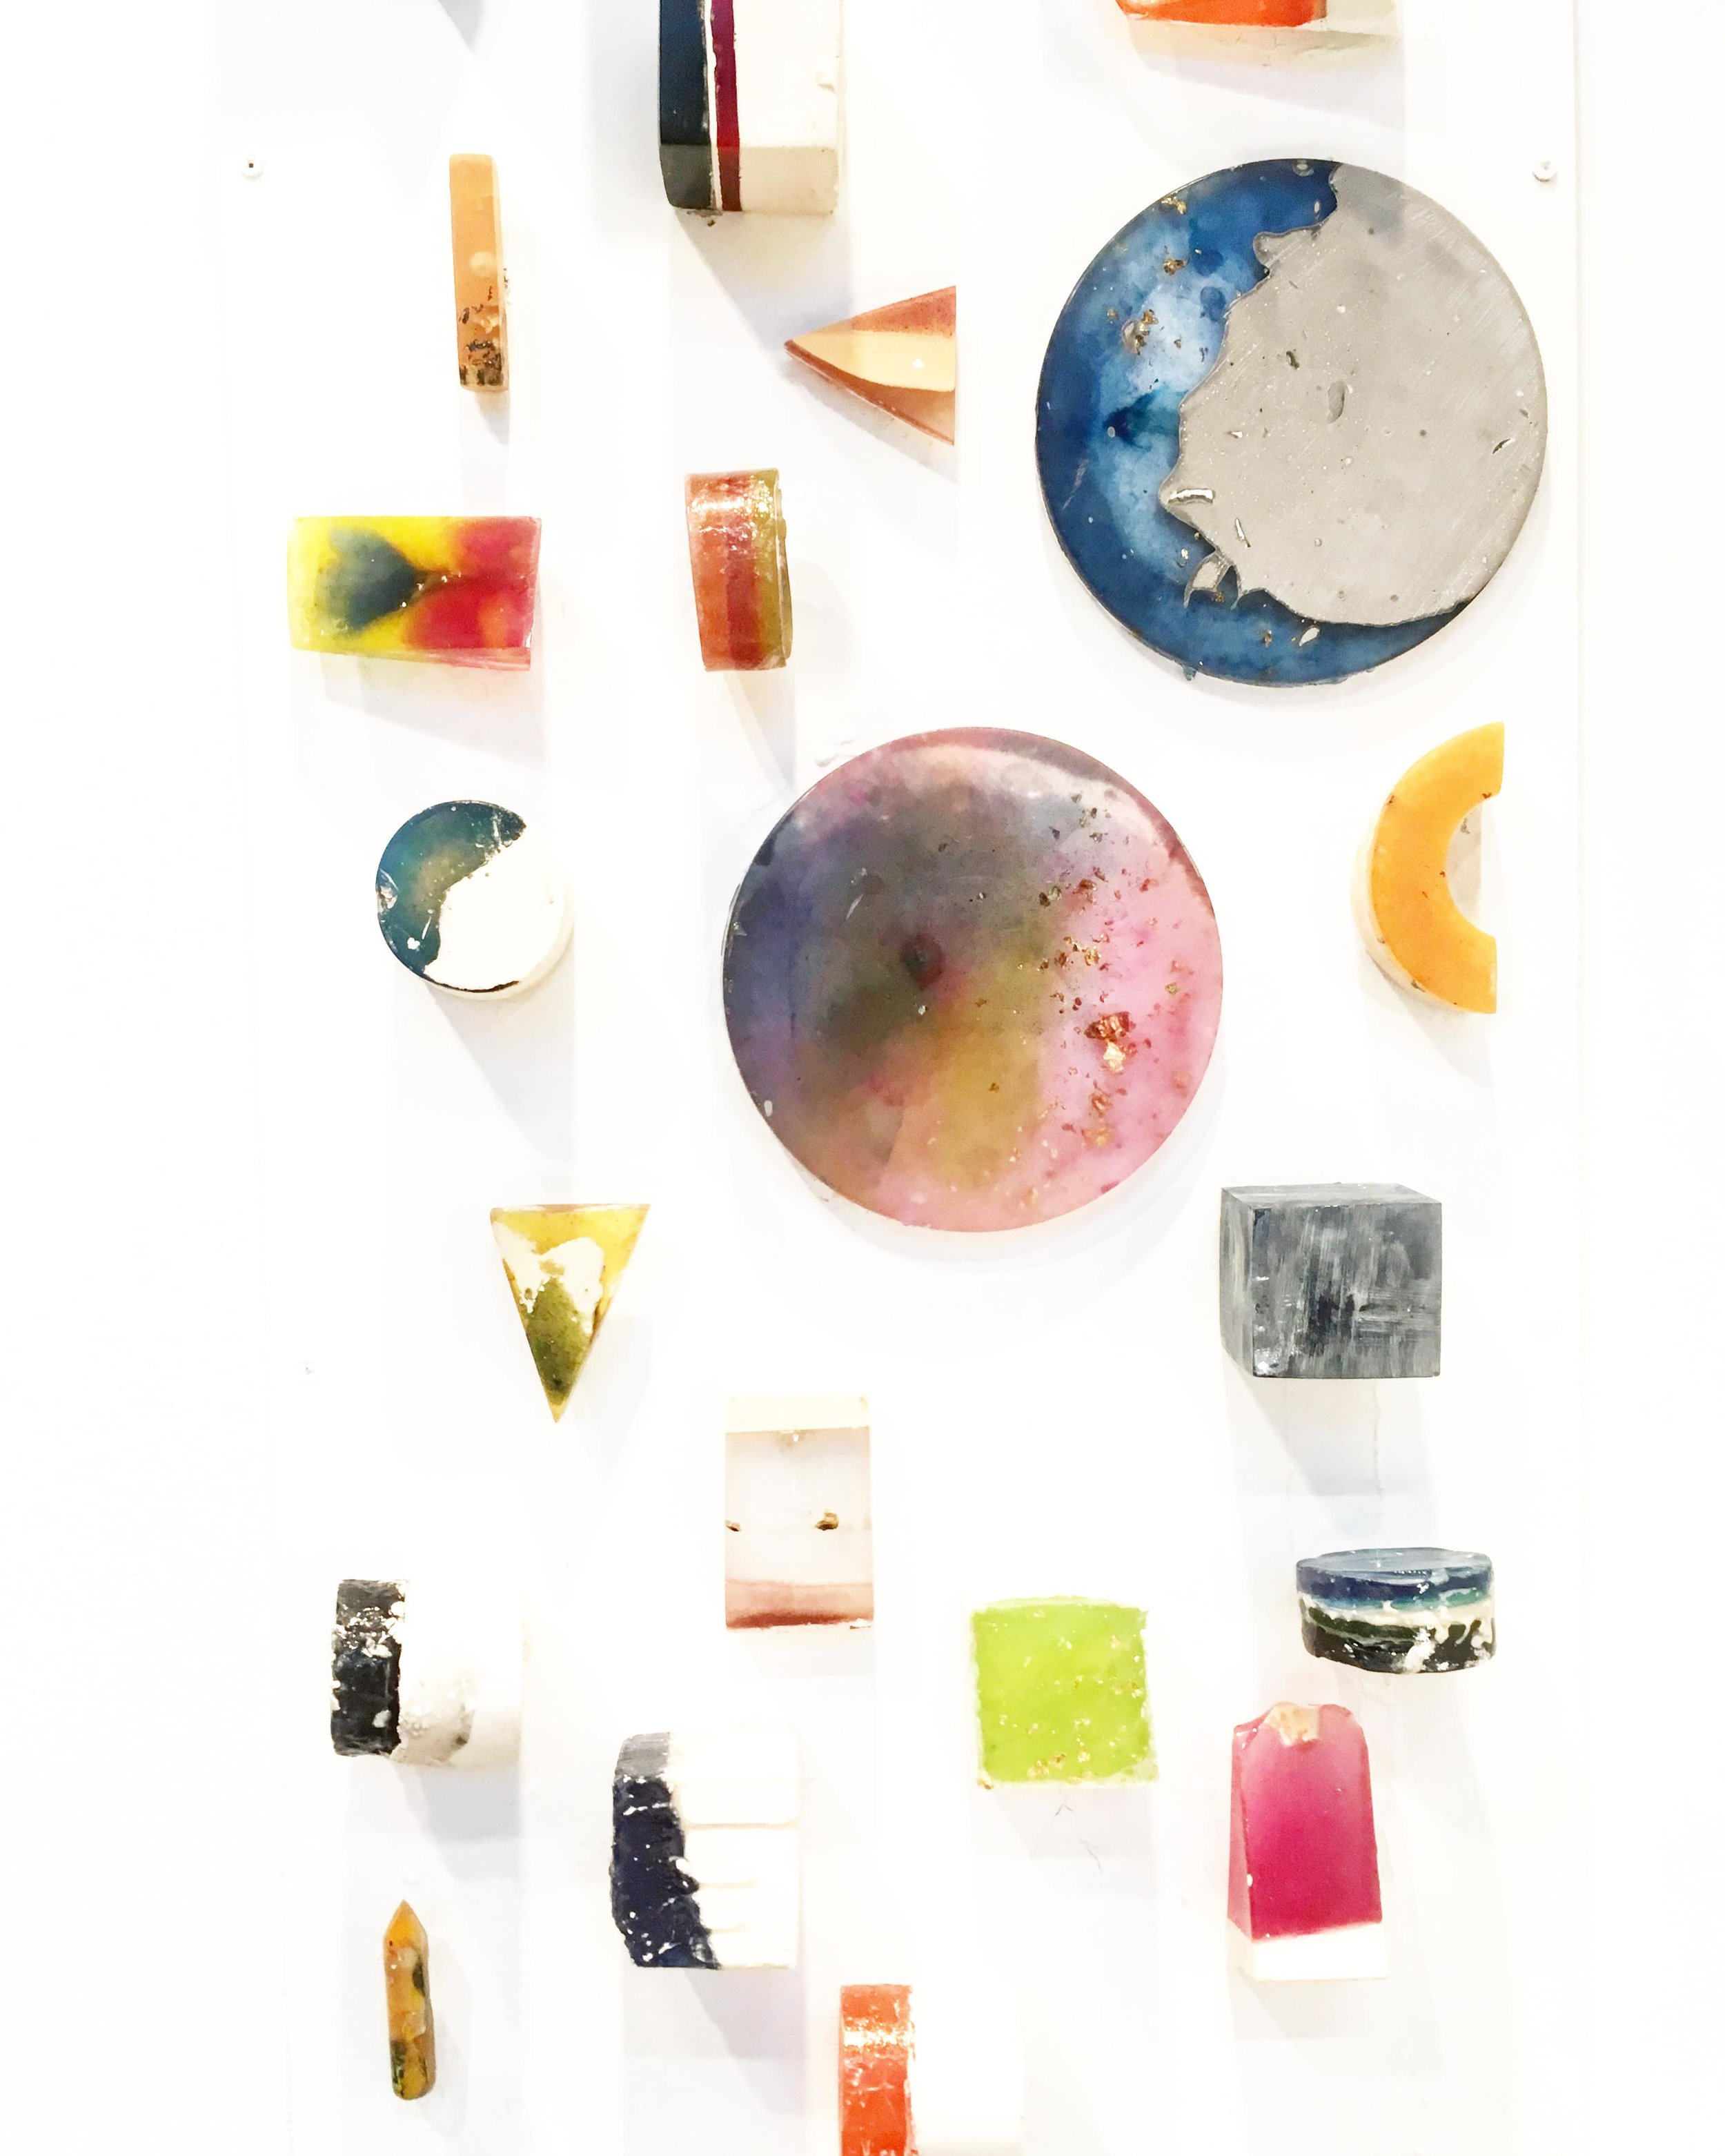 The Mineral Collection  of materials, surfaces and 3D forms, by Abigail Jennifer.